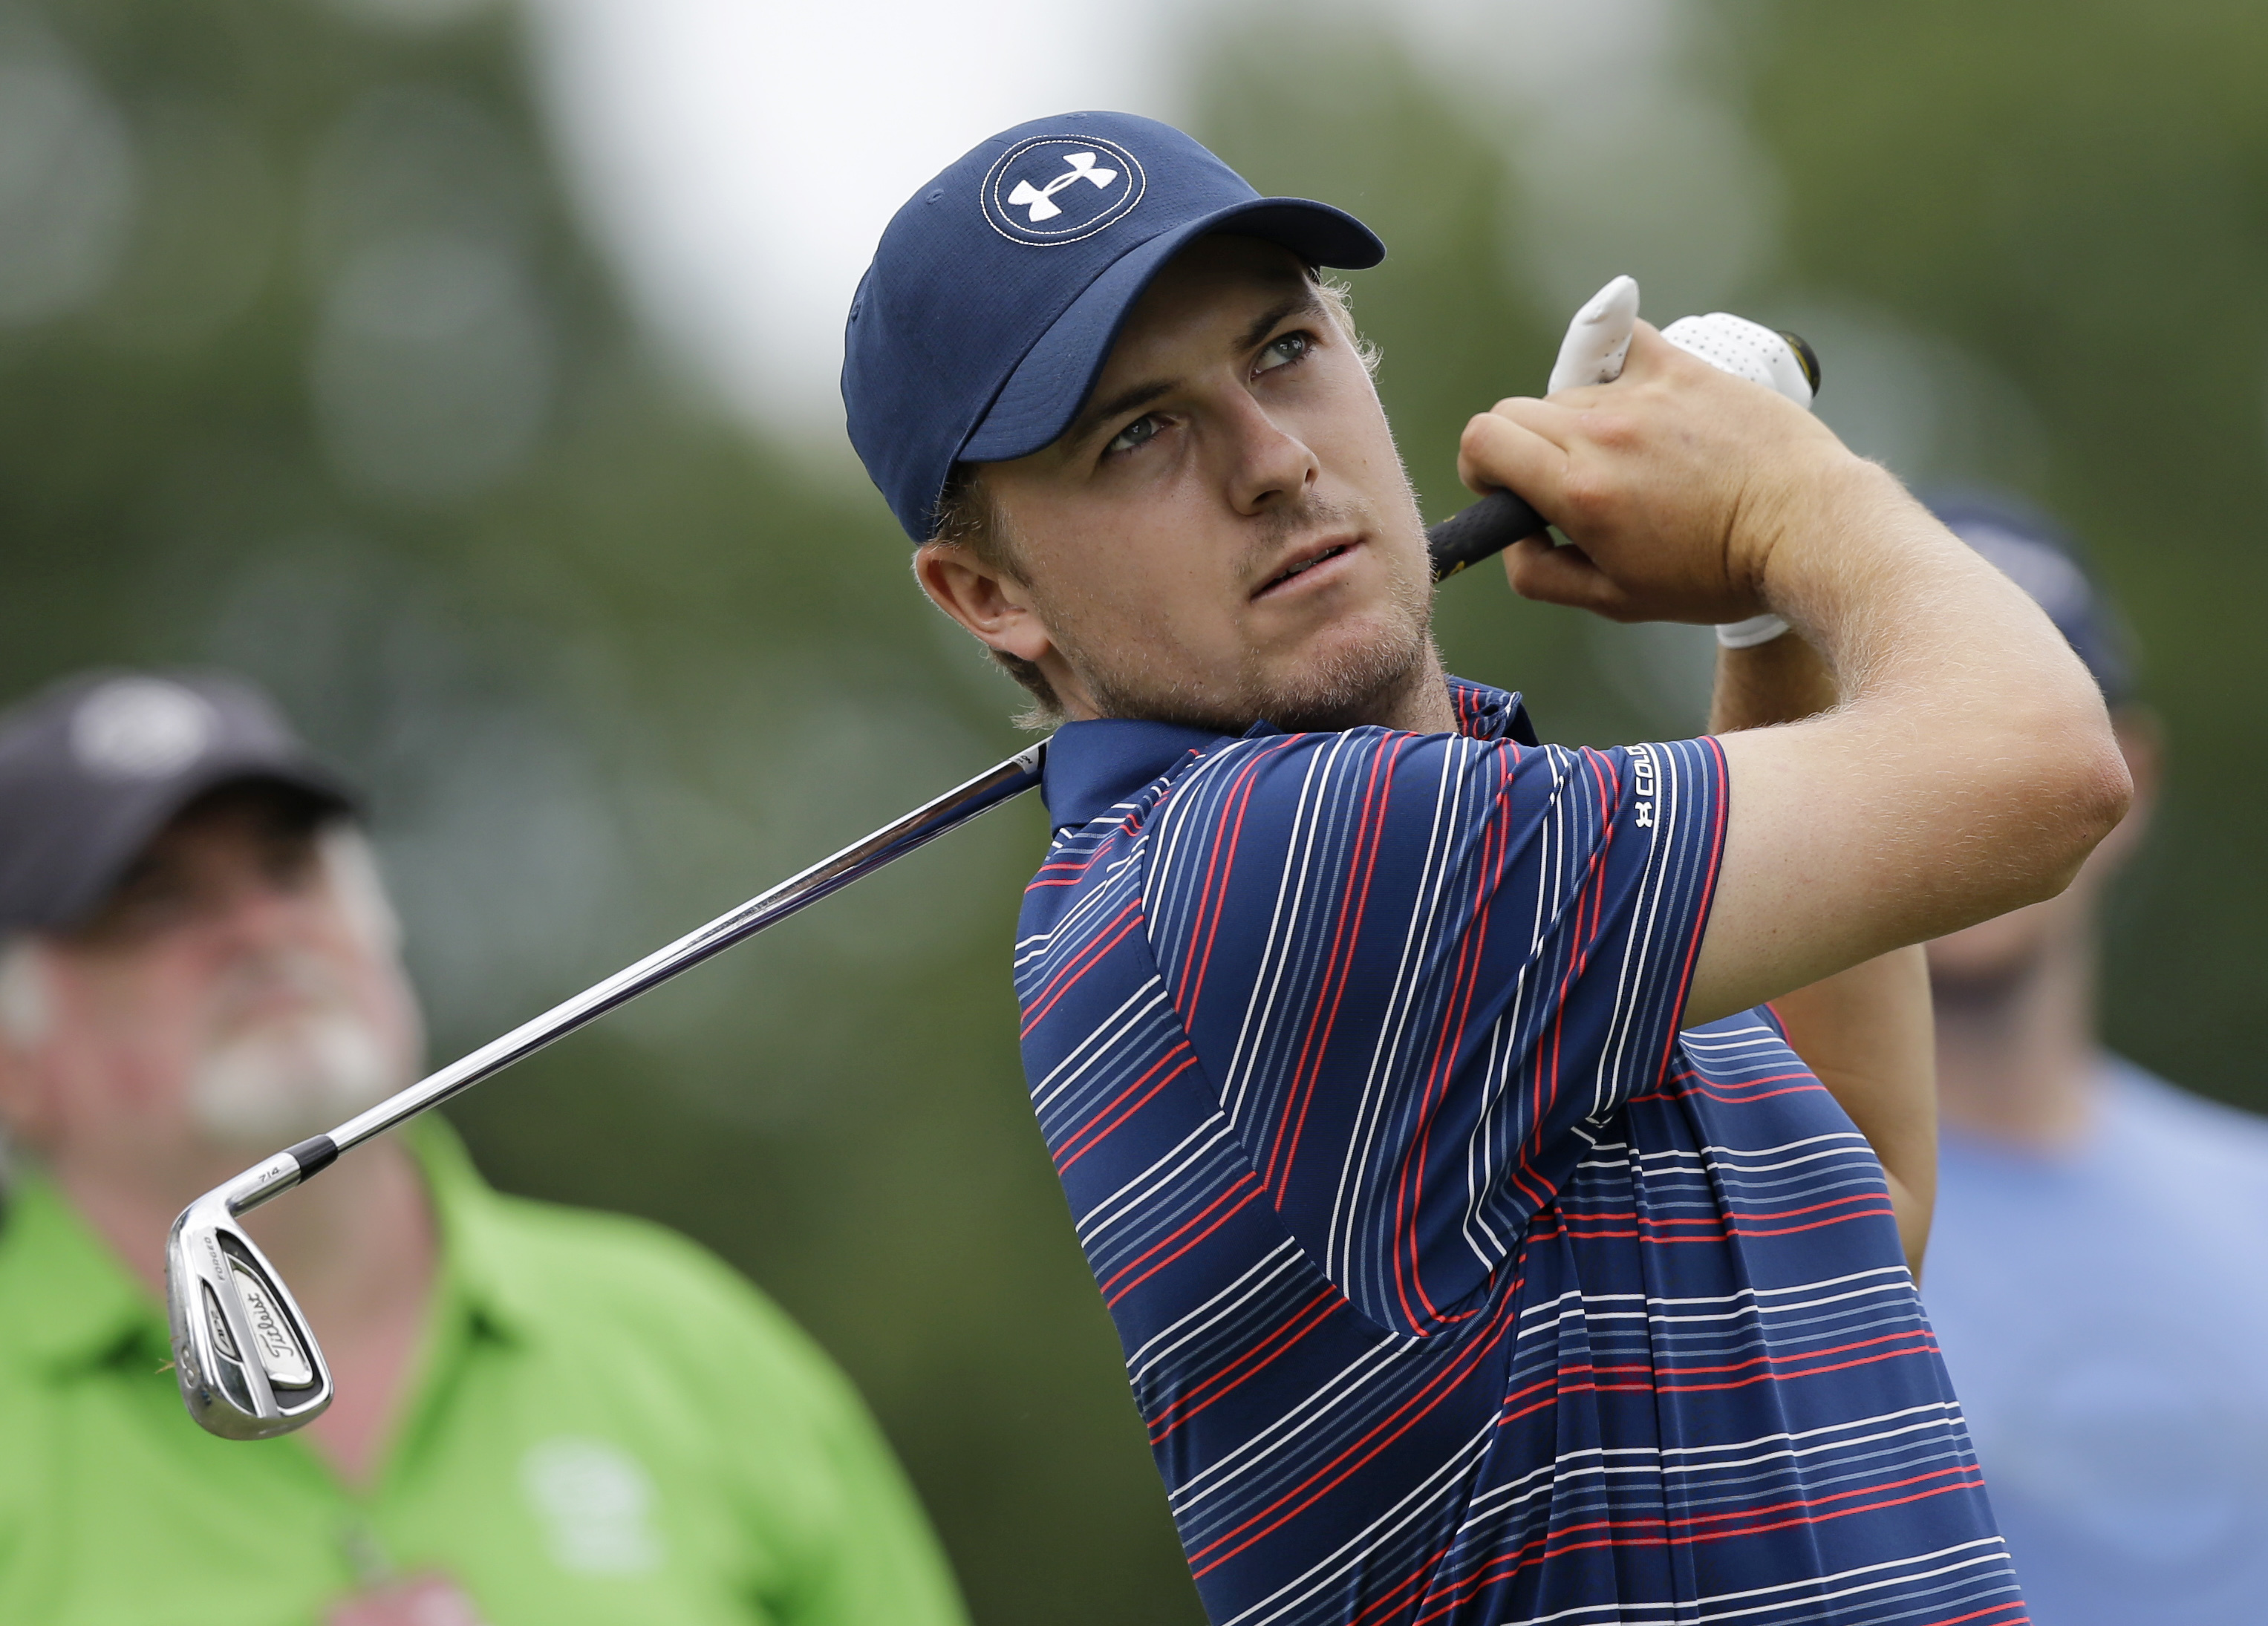 jordan spieth will not compete in 2016 olympics  igf